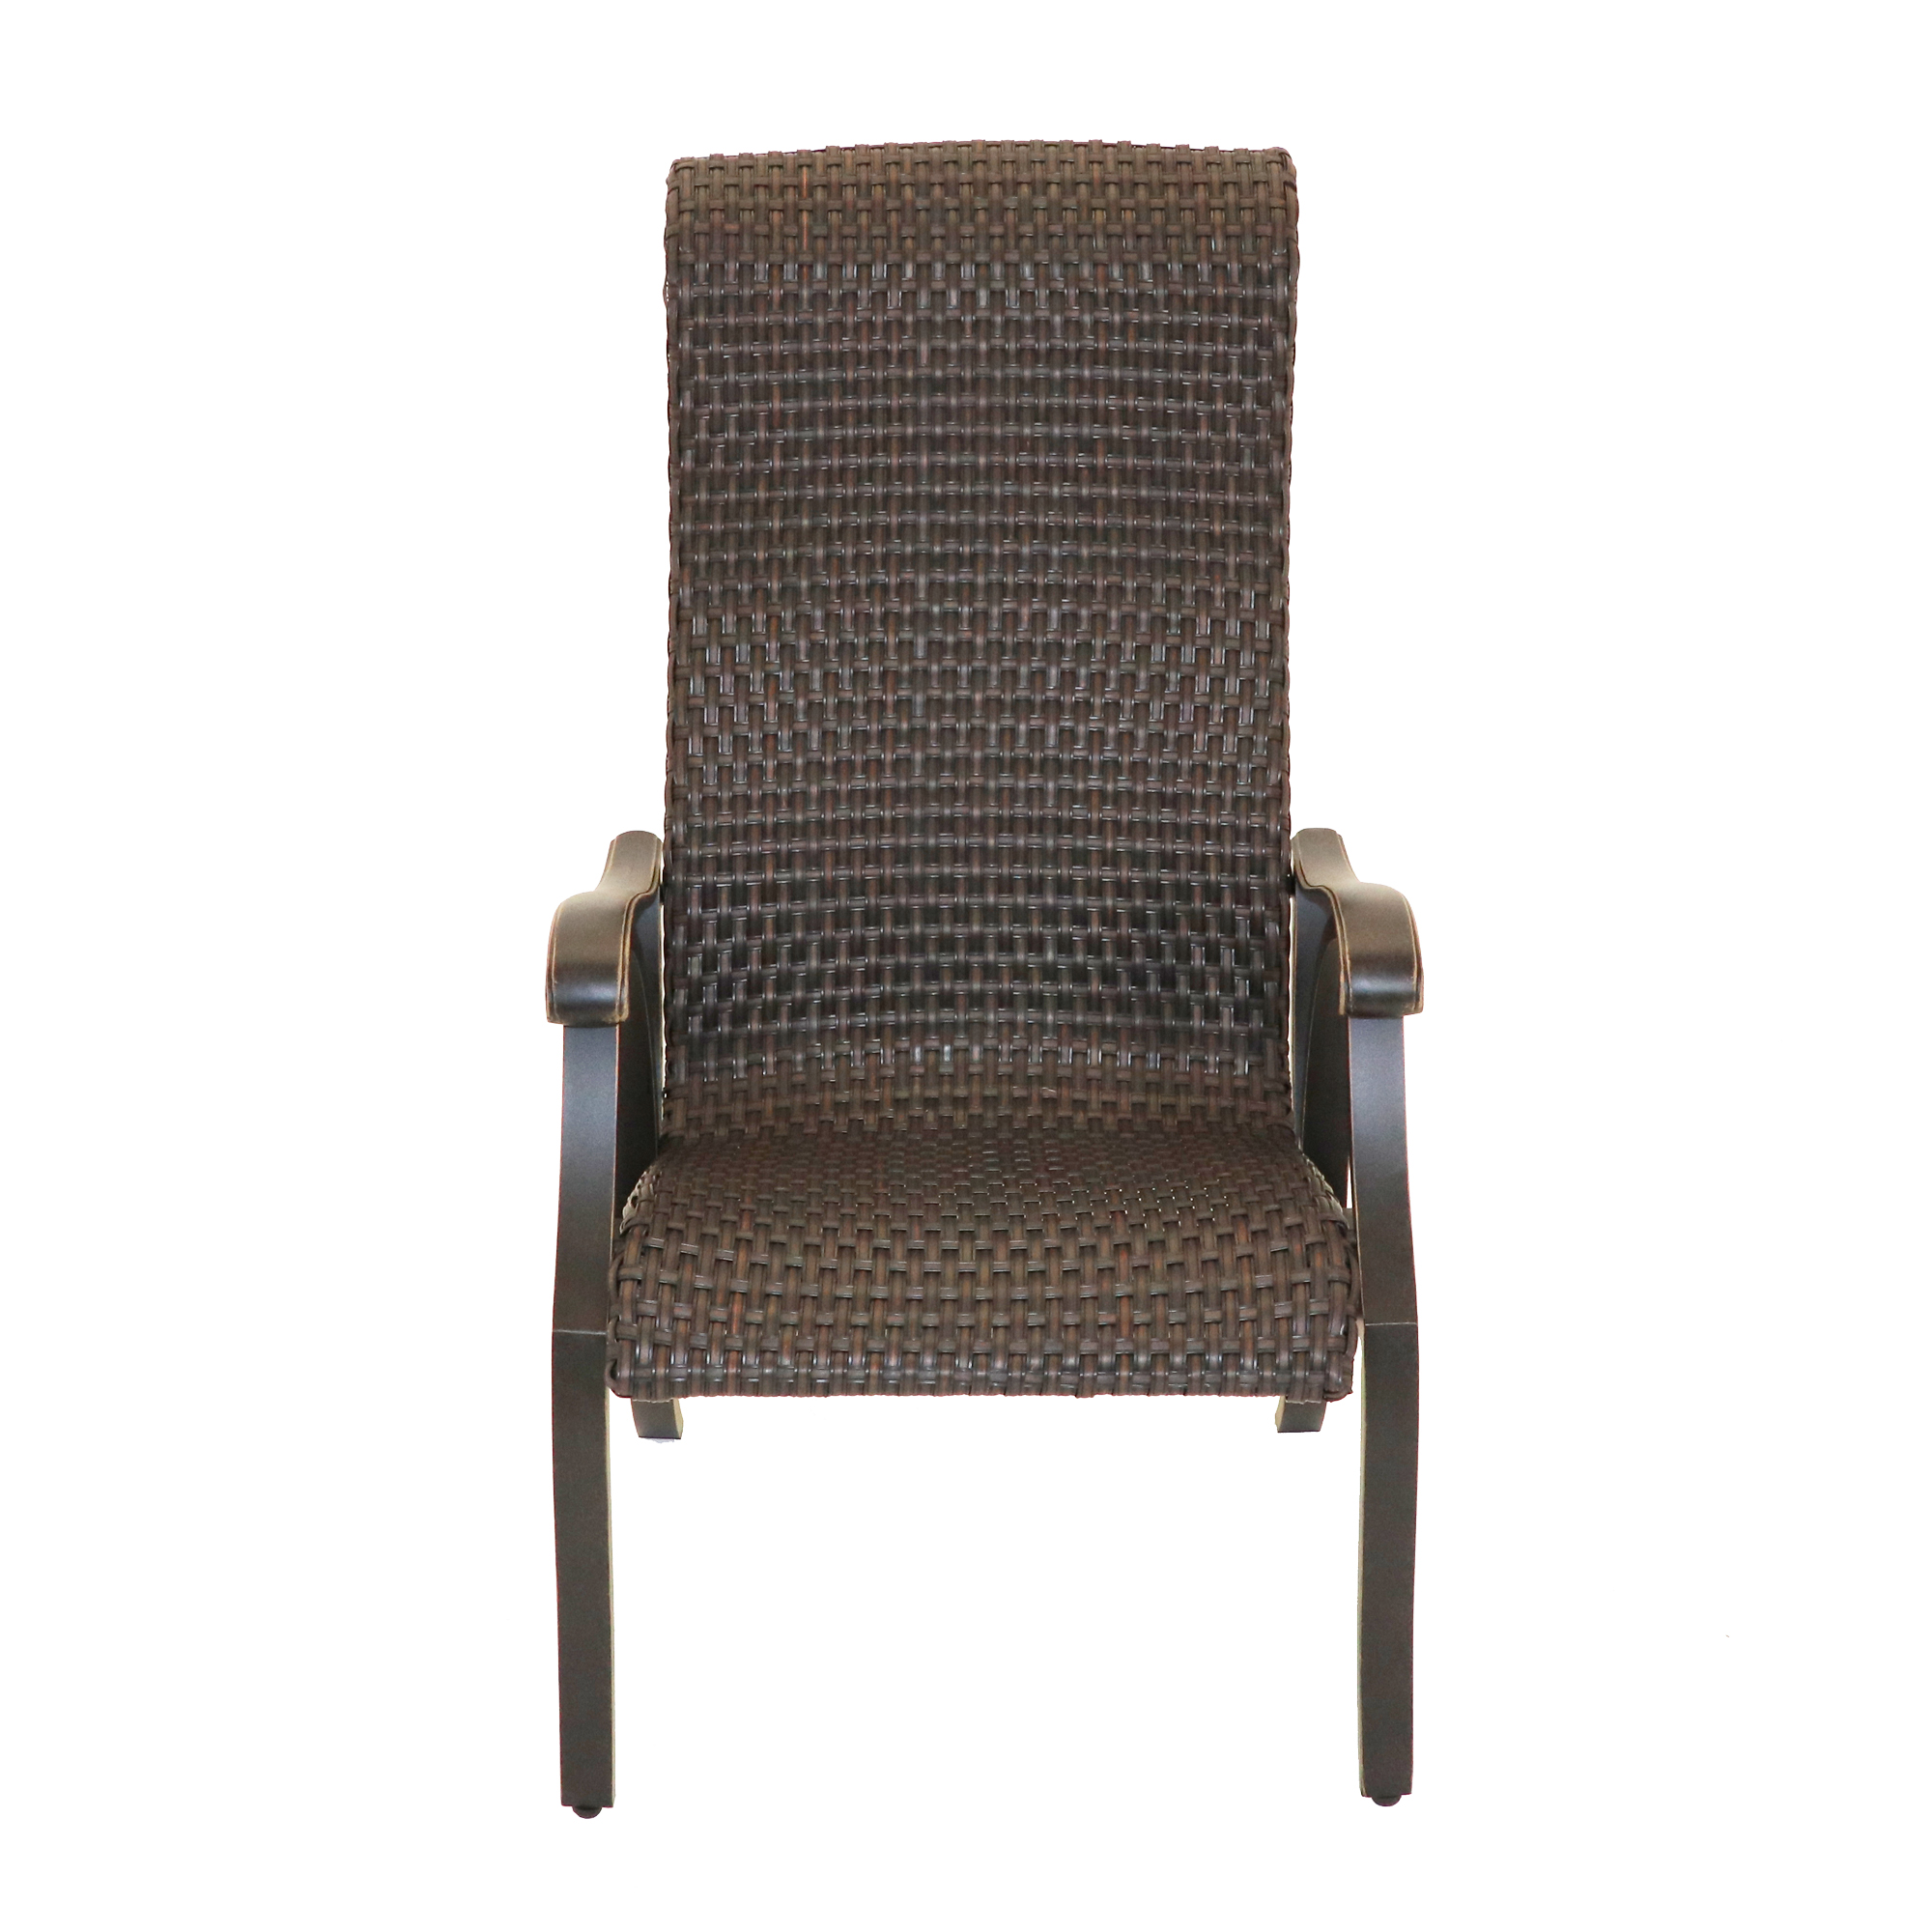 Castle Rock Wicker Dining Chair - Patio Furniture at Sun ...